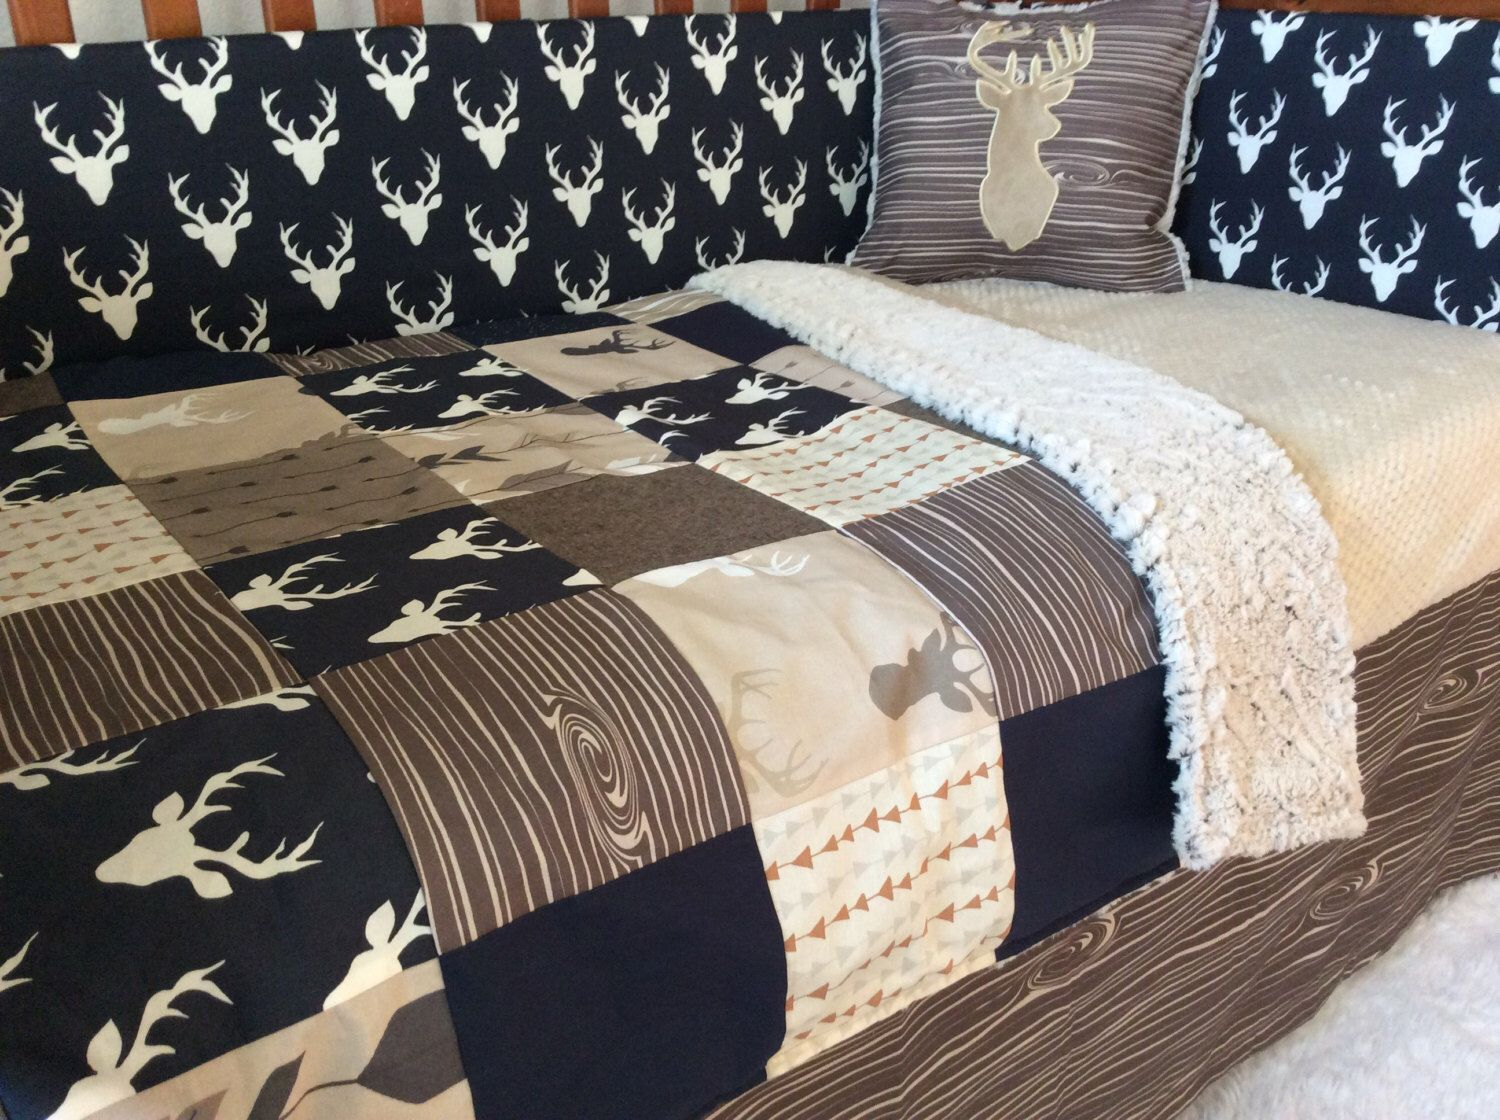 Used crib for sale ottawa - Crib Or Toddler Bed Set Woodland Nursery Navy Tan Brown Deer Crib Set Baby Boy Bedding